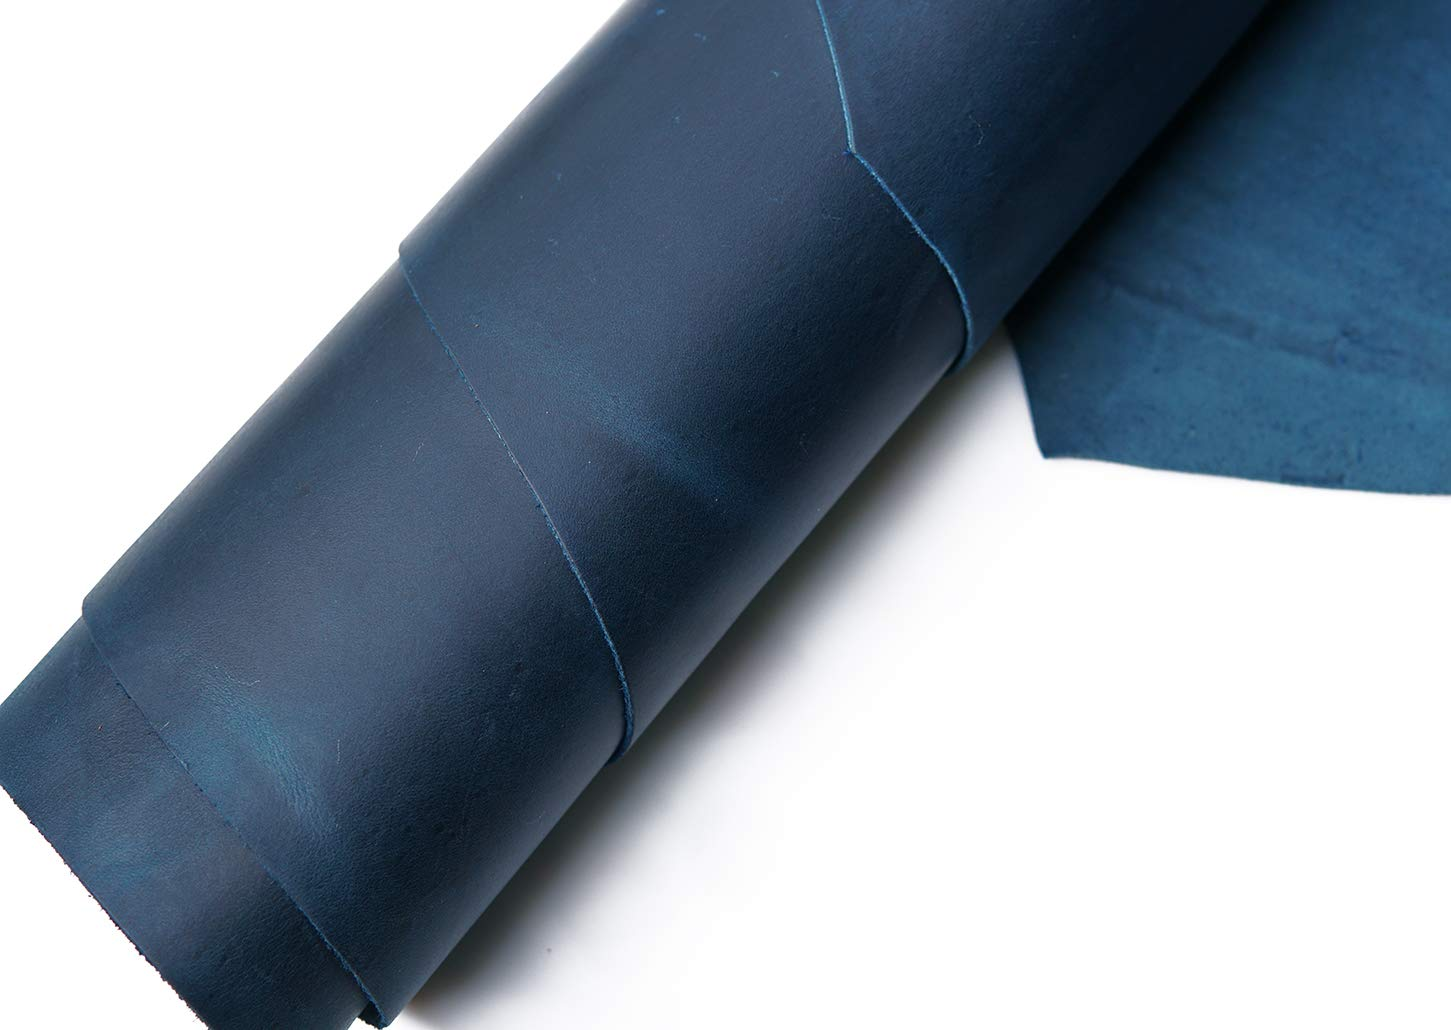 Tooling Leather Square 2.0mm Thick Finished Full Grain Cowhide Leather Crafts Tooling Sewing Hobby Workshop Crafting Leather Accessories (Blue, 12X24inches)